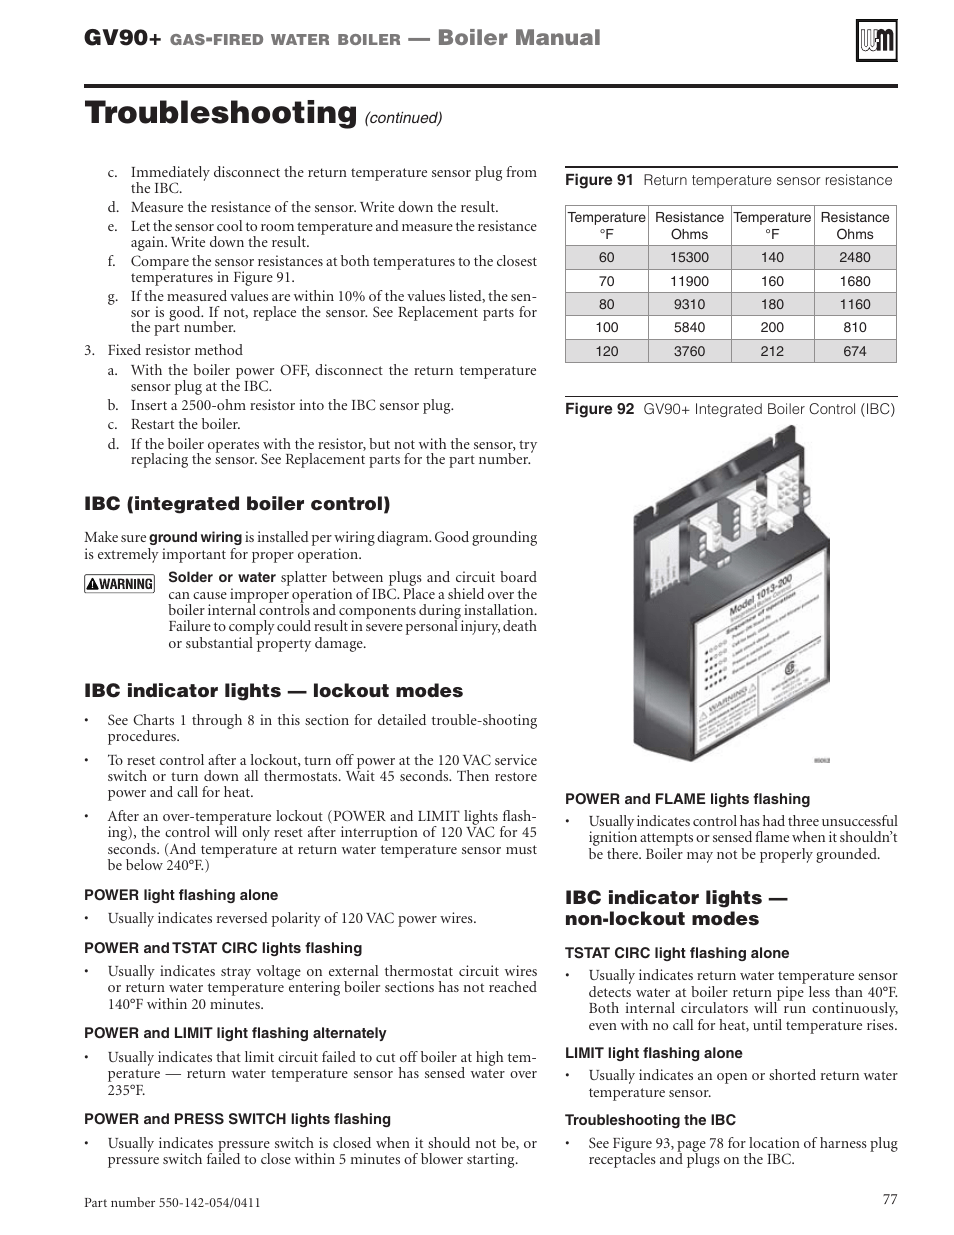 medium resolution of troubleshooting gv90 boiler manual weil mclain gv90 user manual page 77